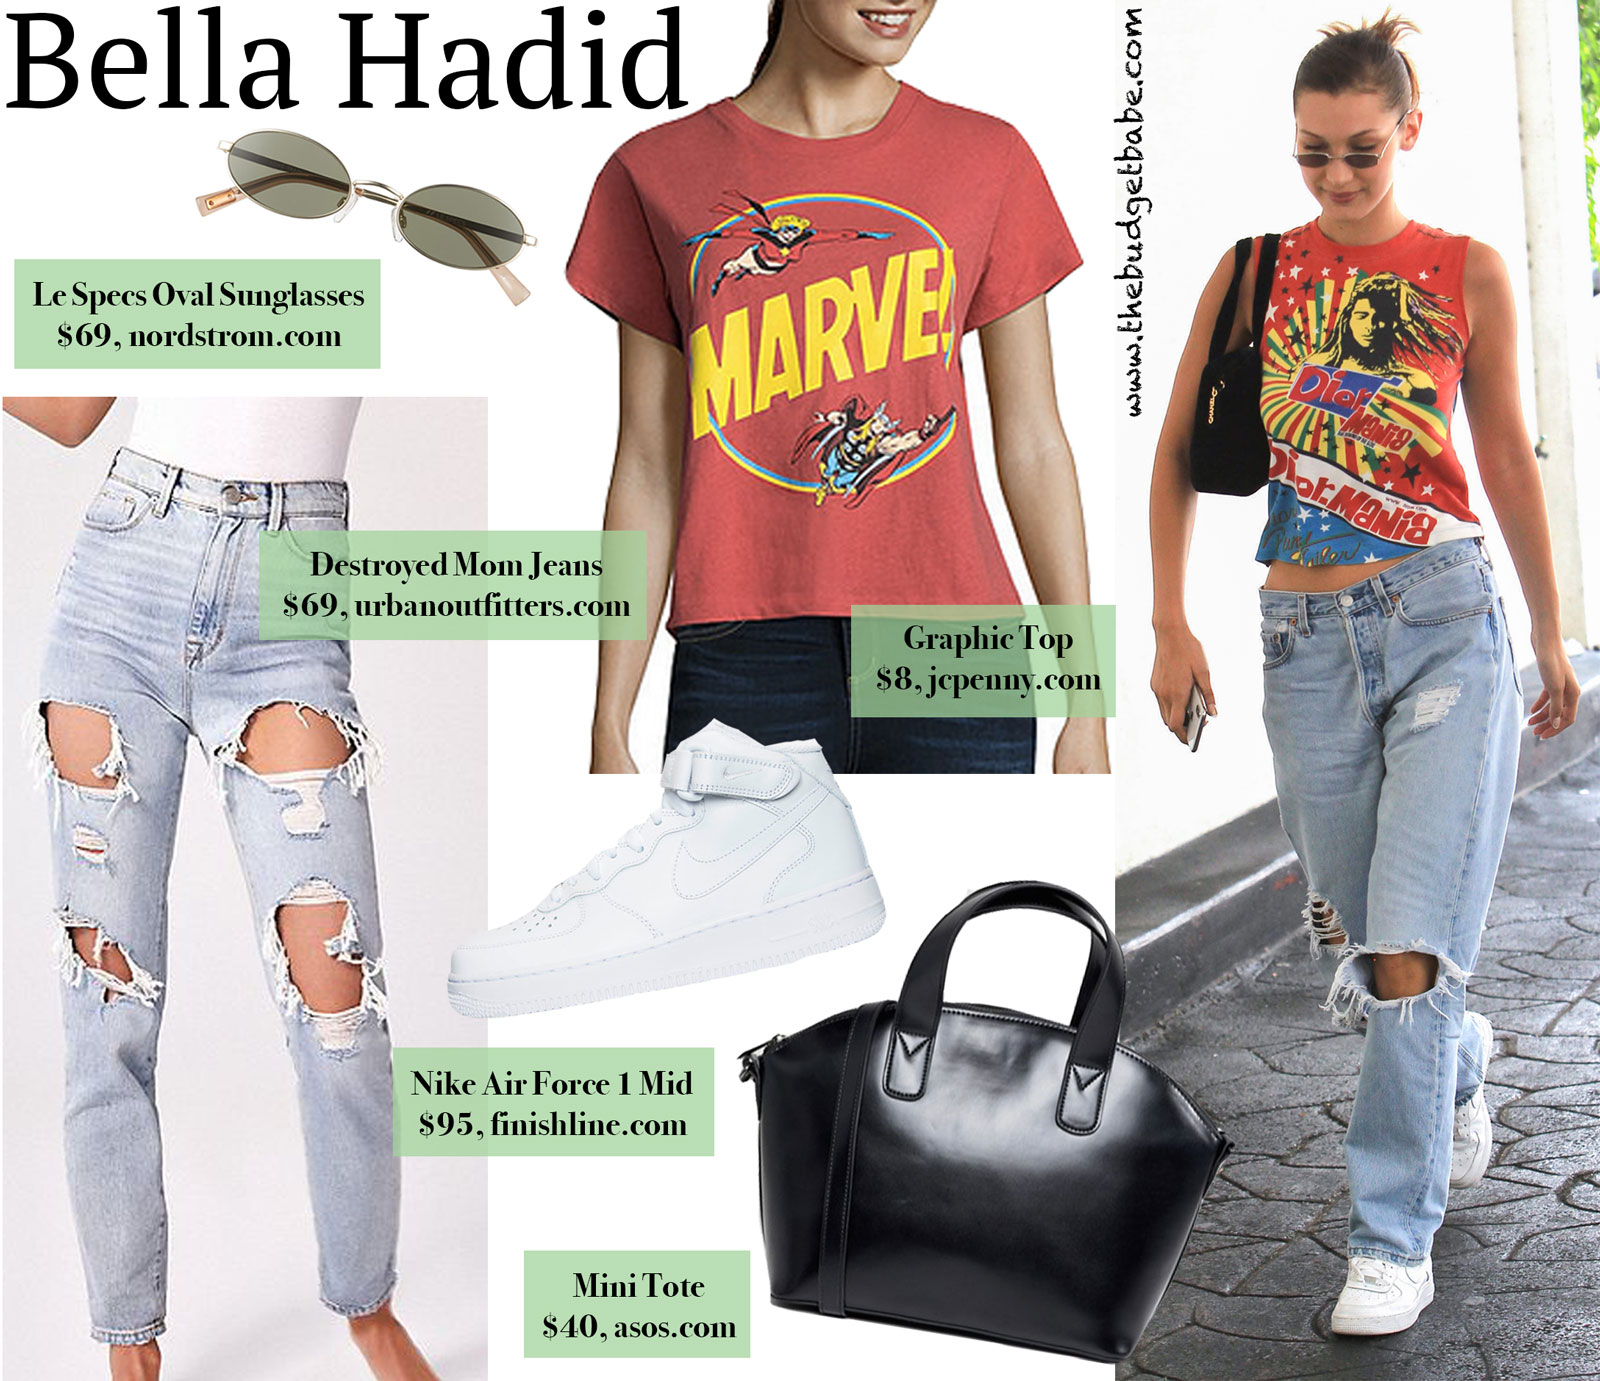 Bella Hadid Graphic Tee Destroyed Denim Look for Less